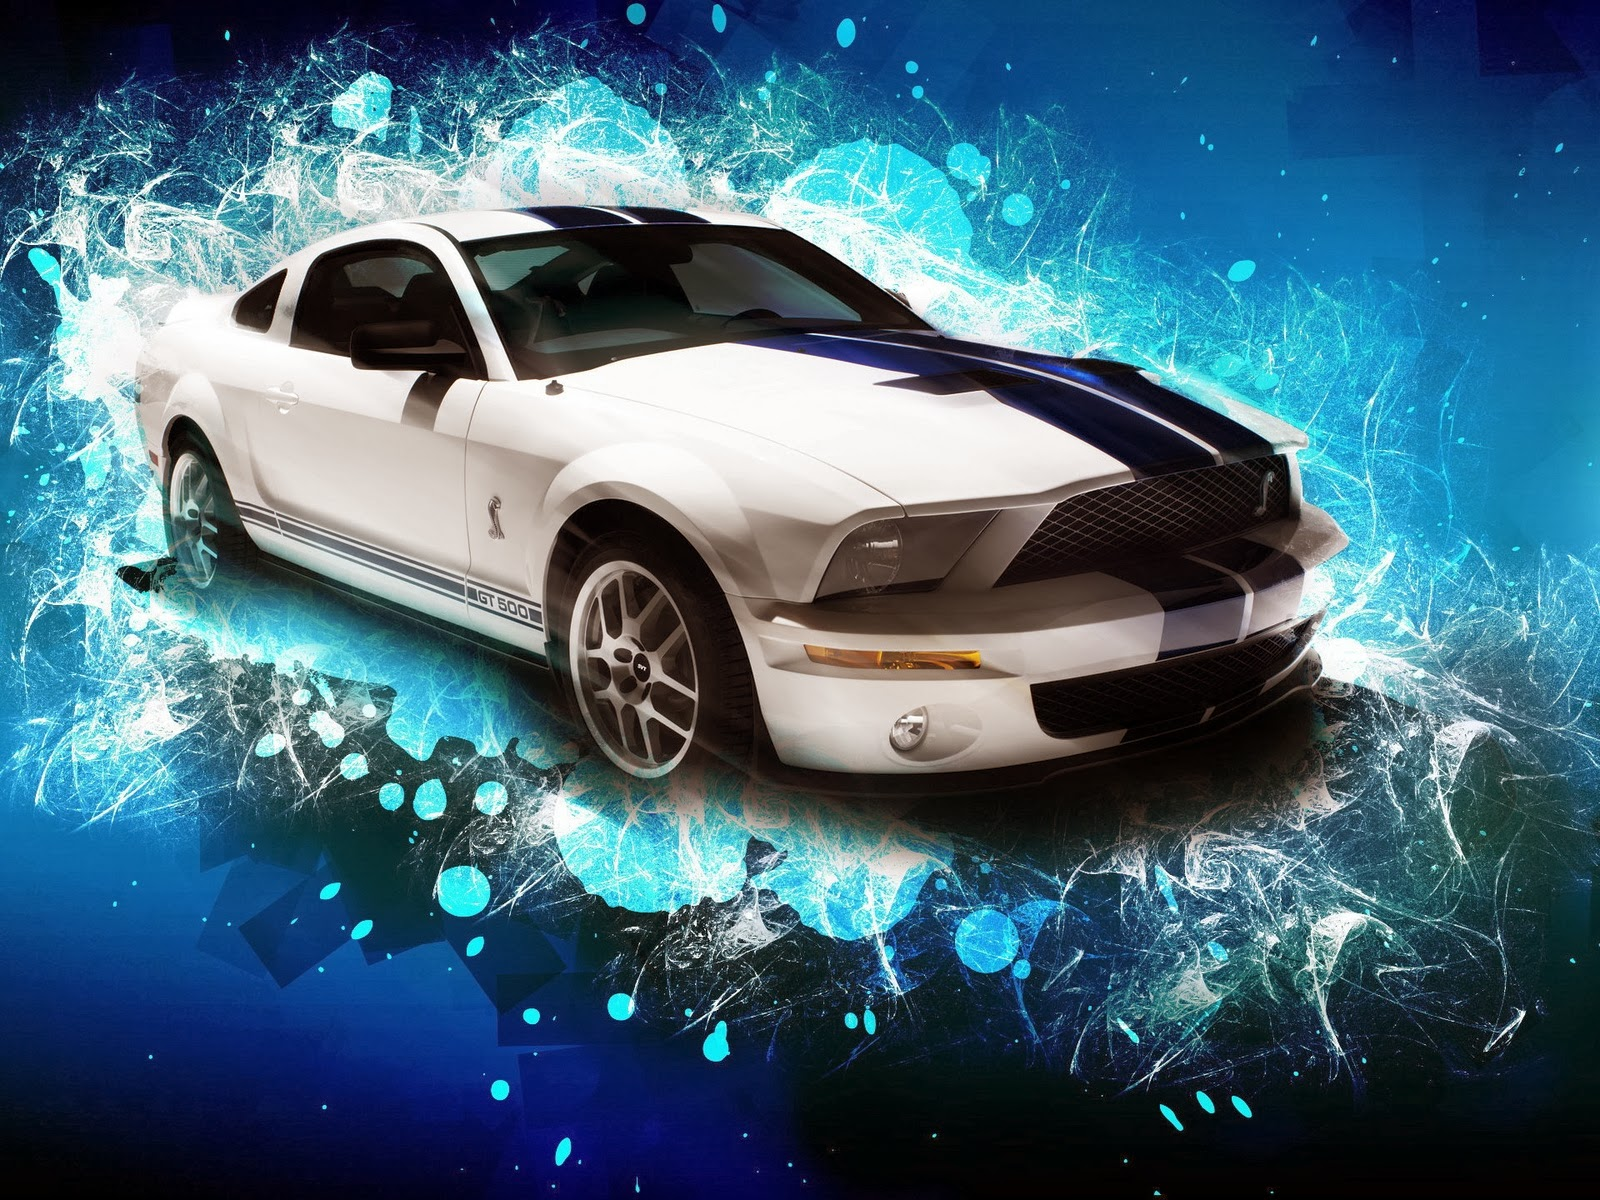 hd car wallpapers 1080p - pakistani fun chat | a hub of